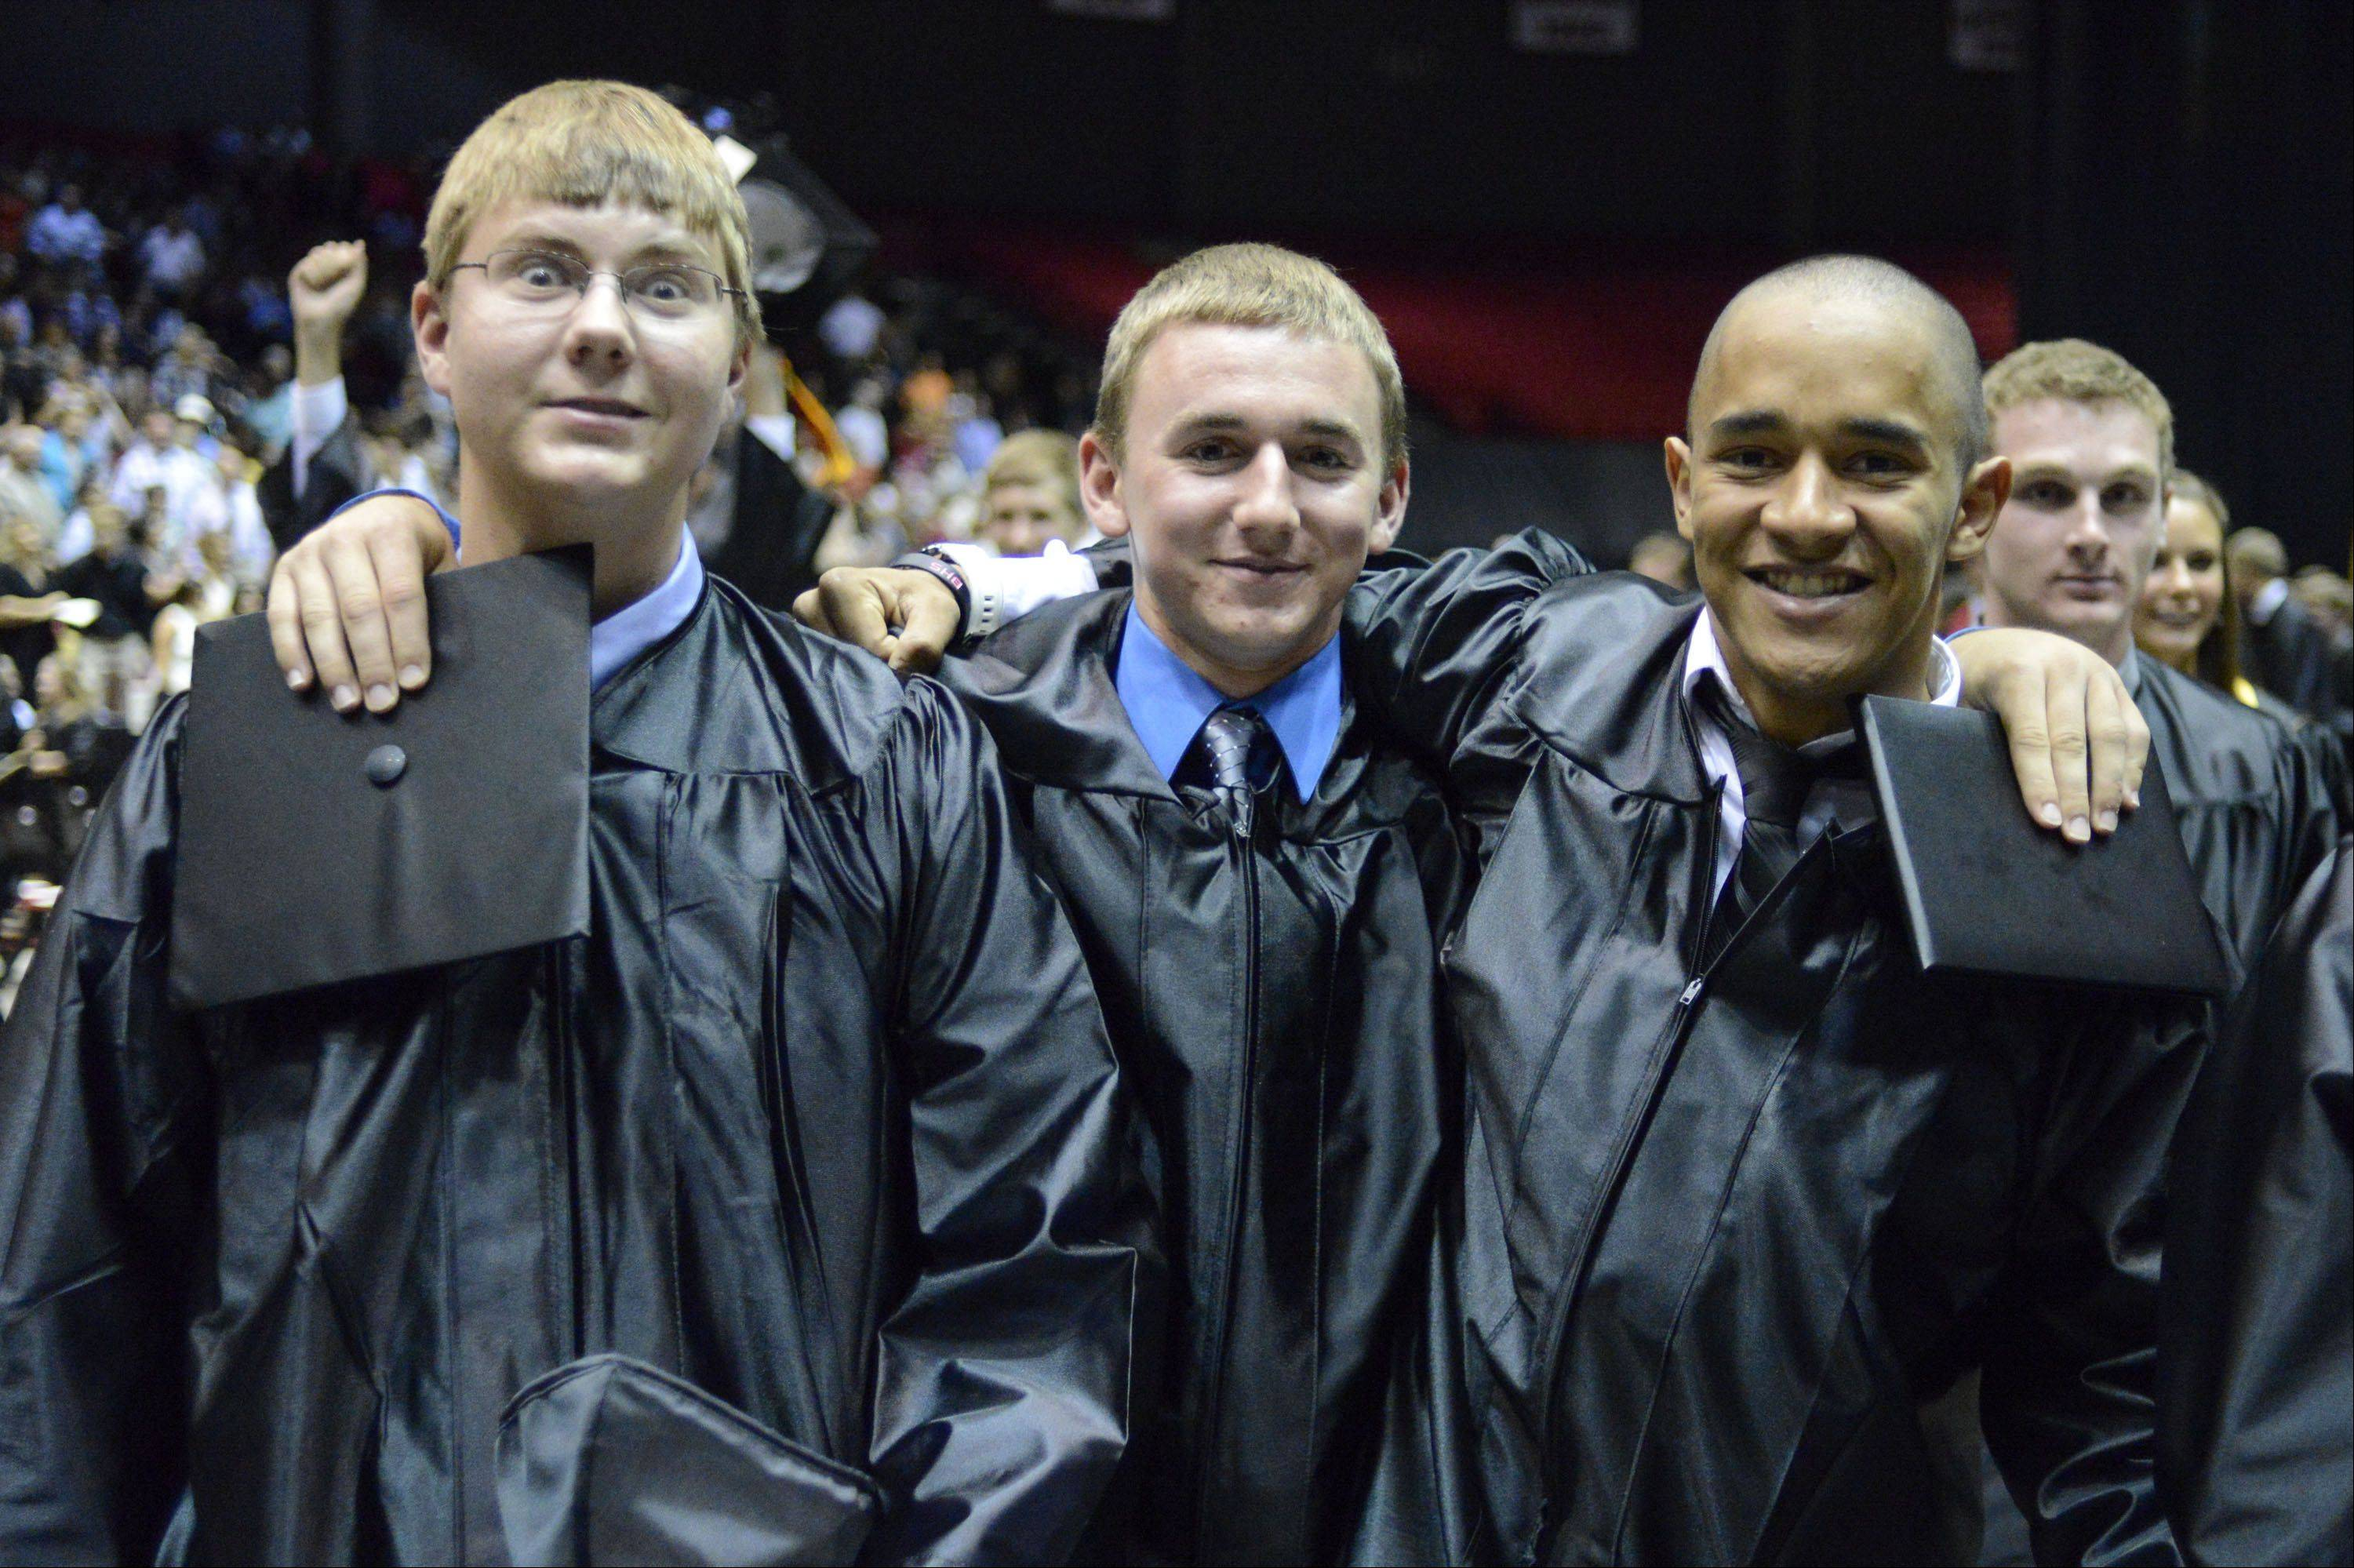 Images from the Batavia High School graduation ceremony Friday, May 31, 2013 at the NIU convocation center in Dekalb.